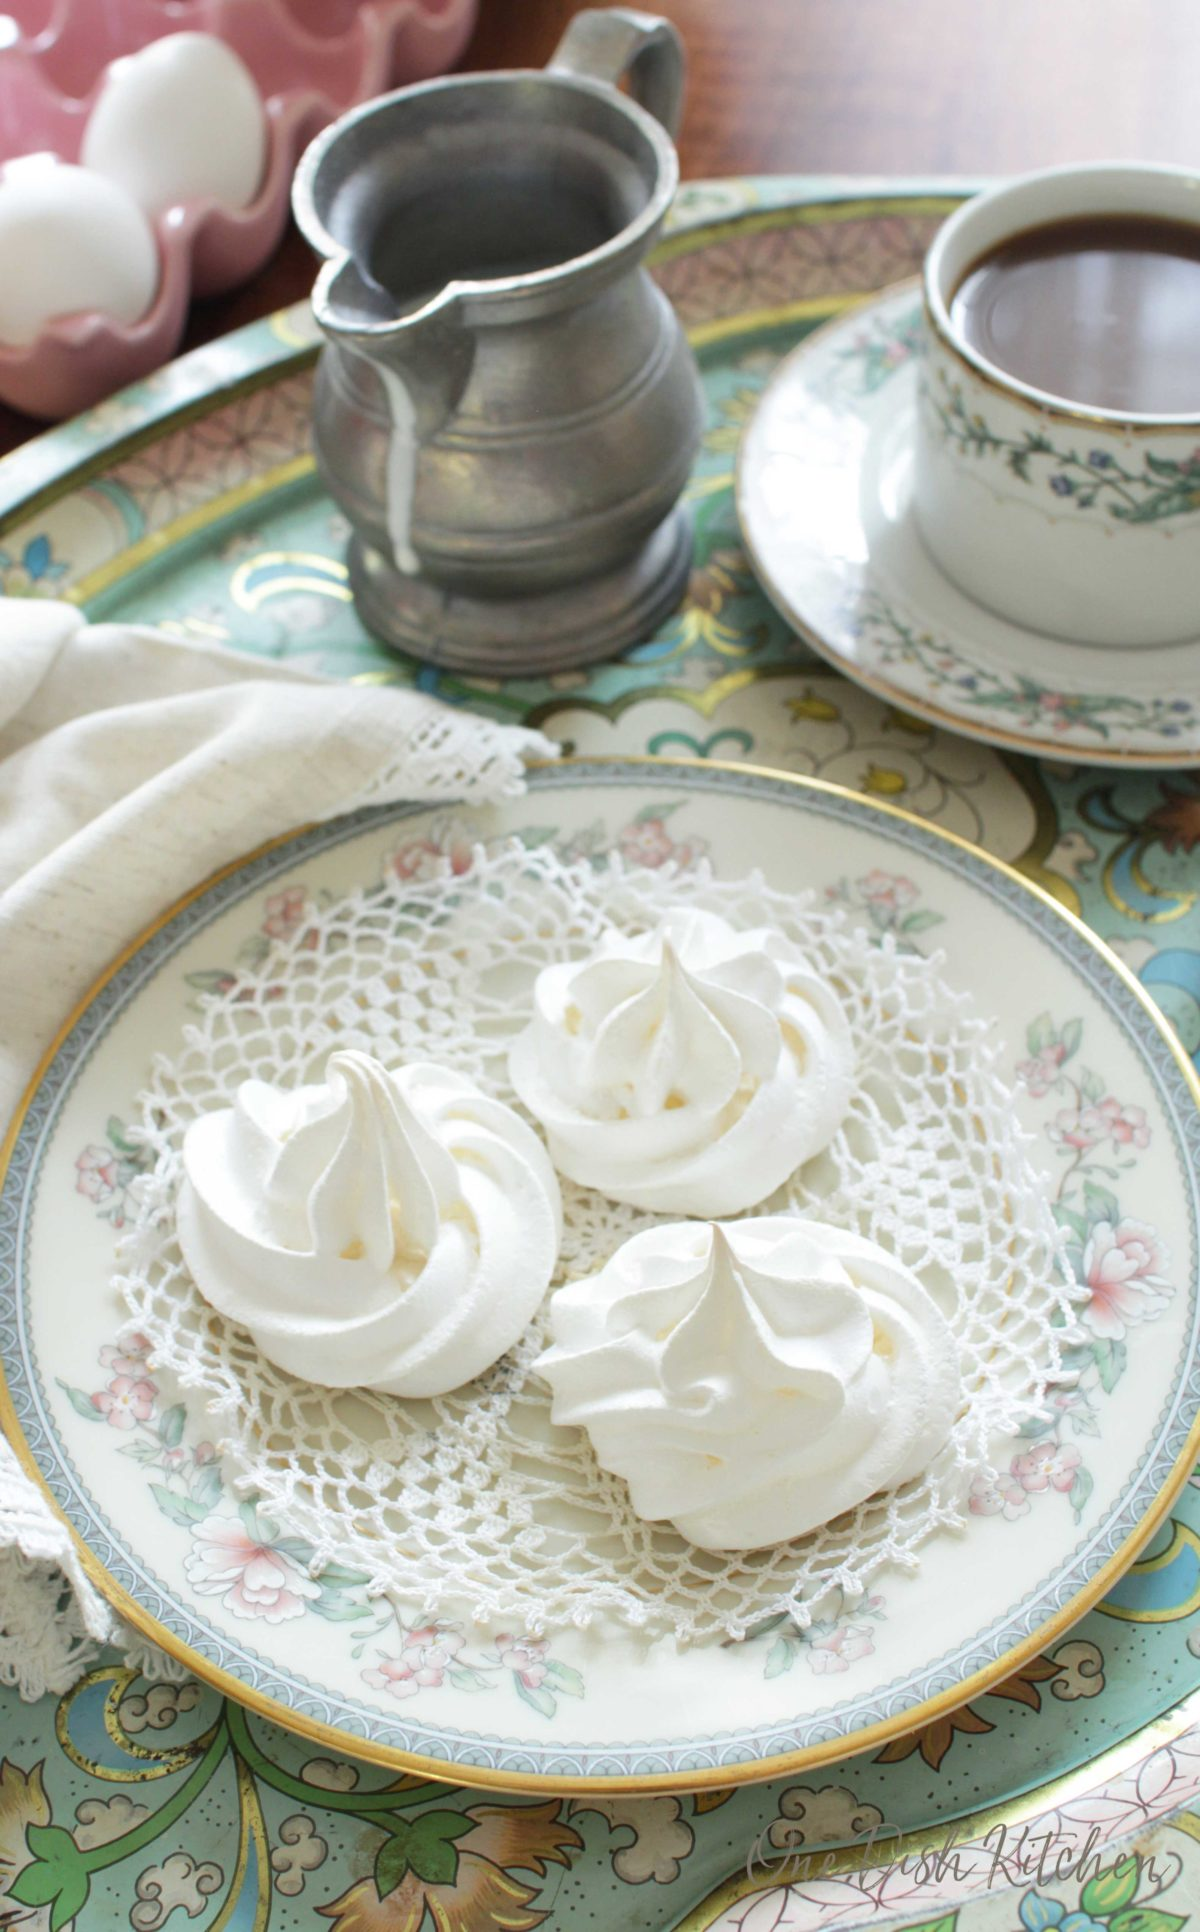 A plate of three meringues on a tray next to a cup of coffee and a small pitcher of cream.